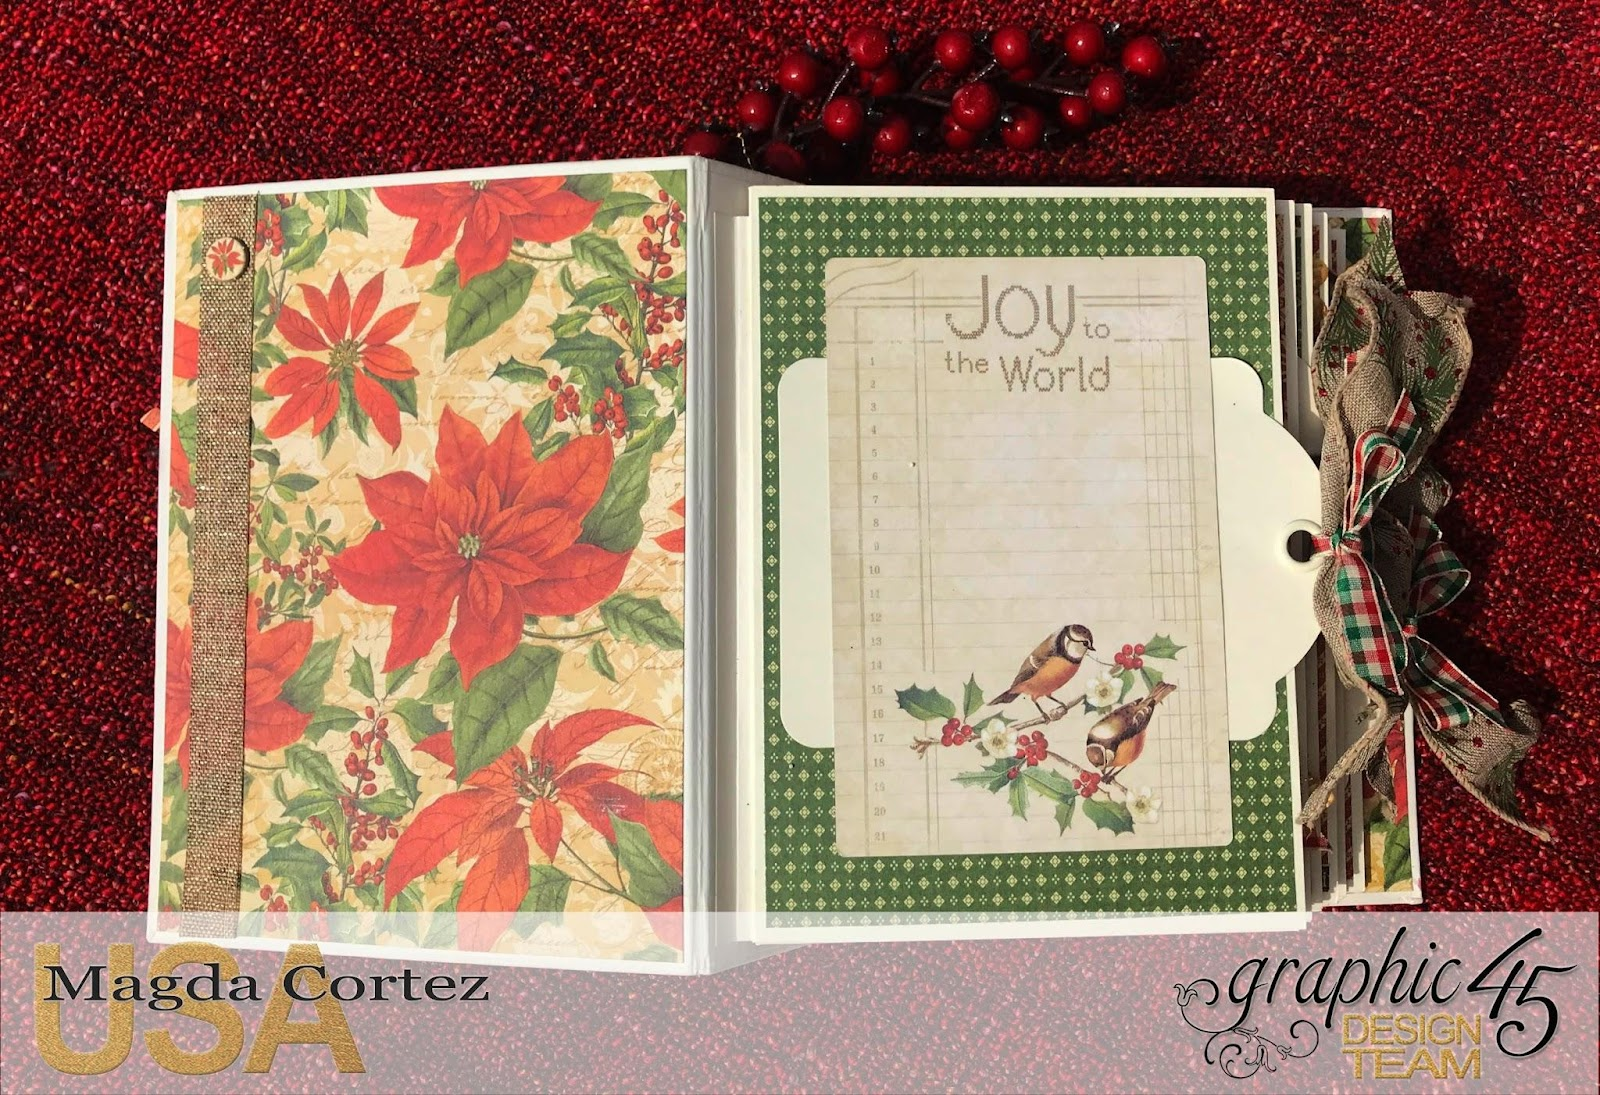 Believe Mini Album,Winter Wonderland By Magda Cortez, Product by Graphic 45, Photo 05 of 11 .jpg